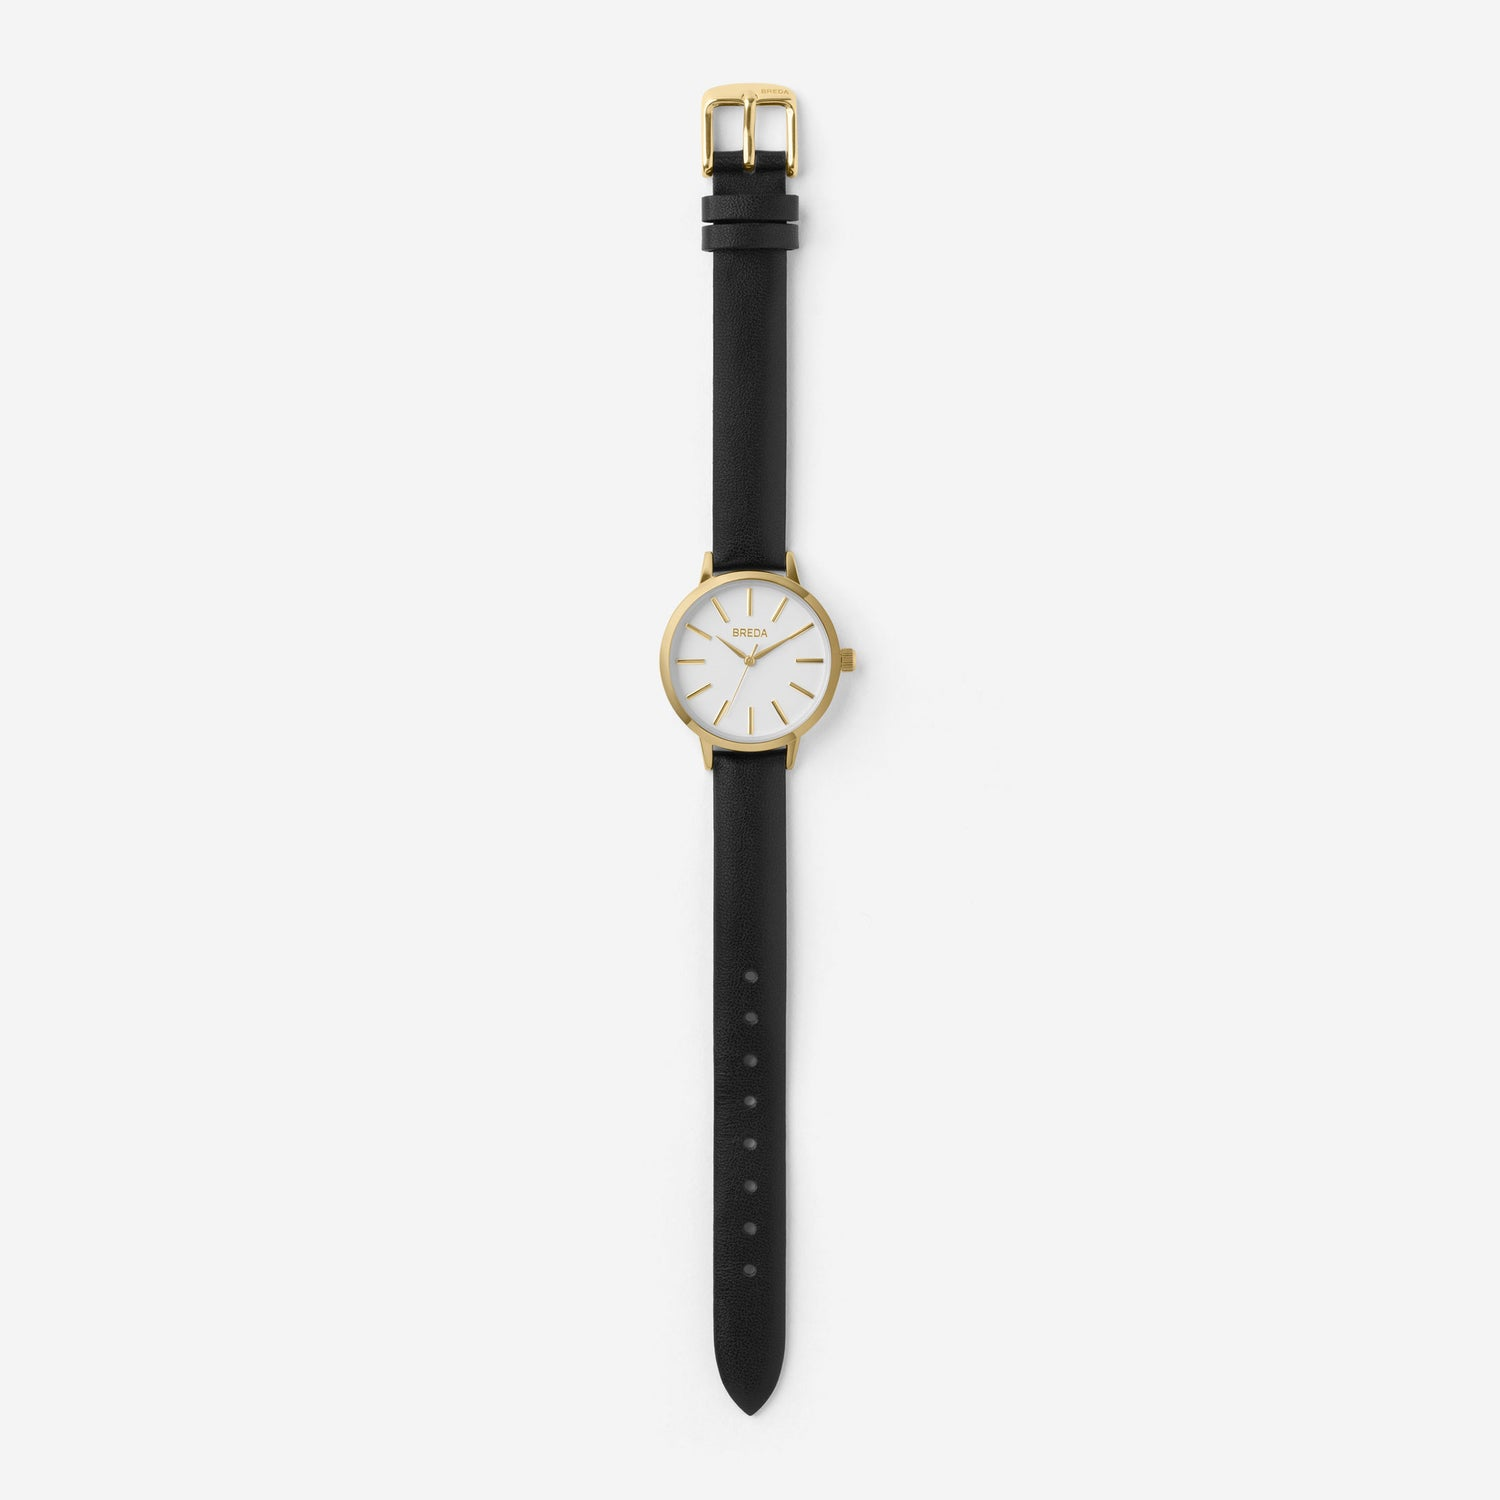 breda-petite-joule-1734a-gold-black-watch-long